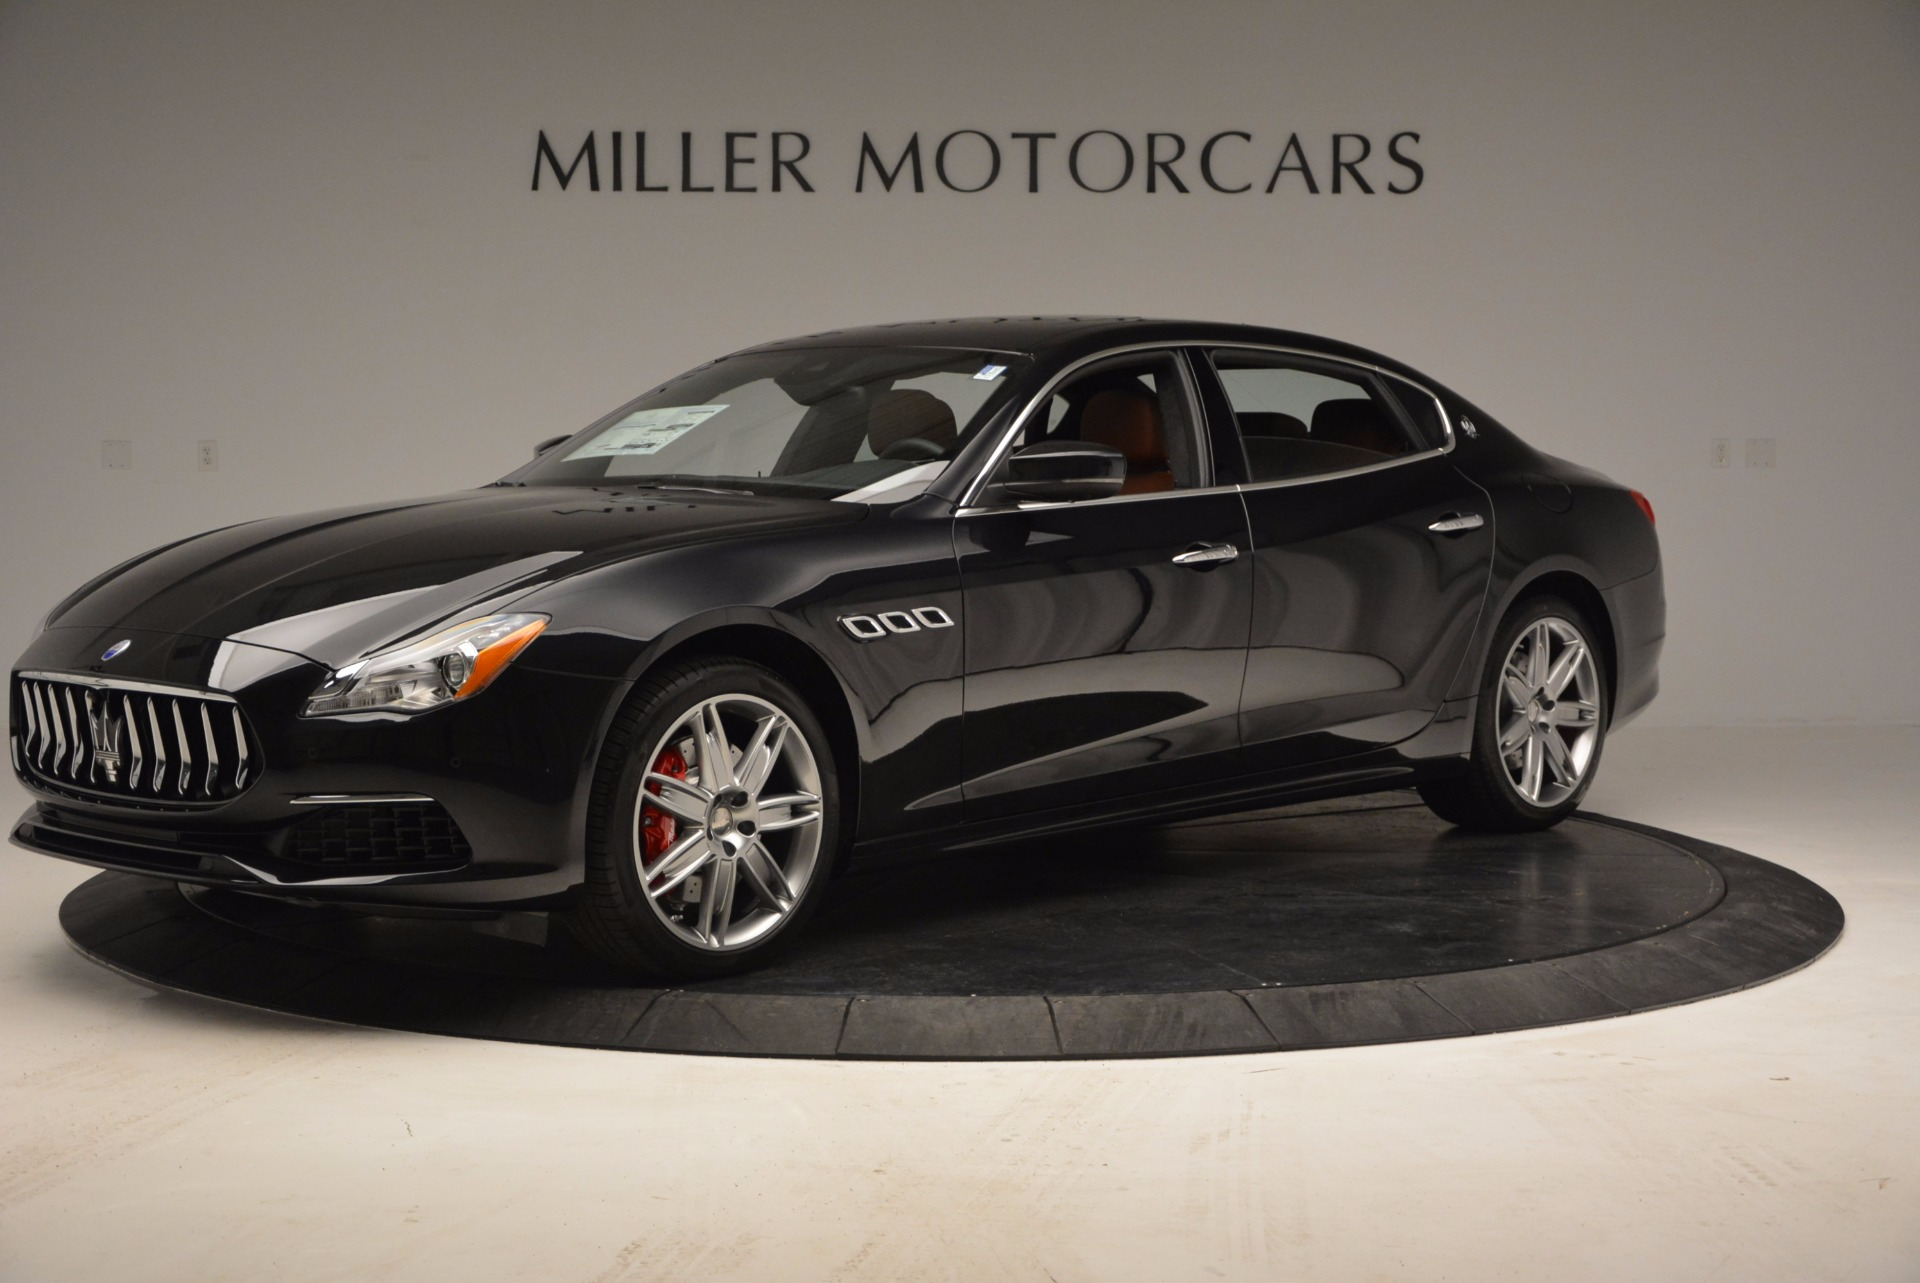 New 2017 Maserati Quattroporte S Q4 GranLusso For Sale In Greenwich, CT 716_p2